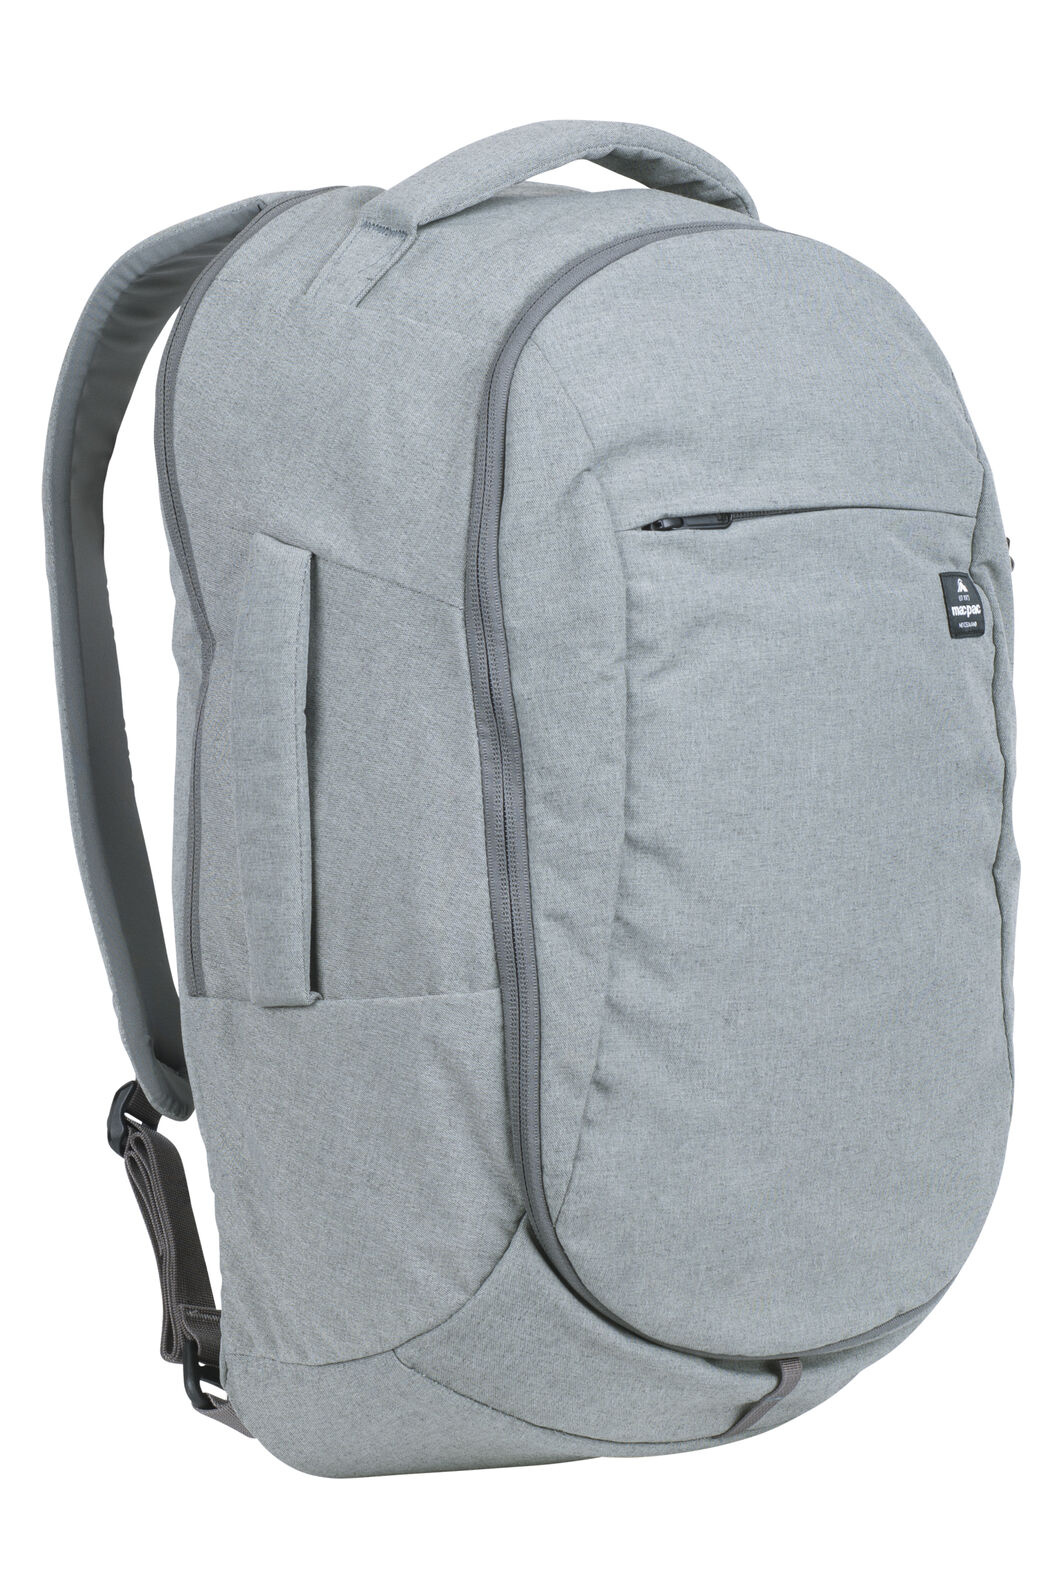 UTSIFOY 1.1 25L Backpack, Castor Grey, hi-res